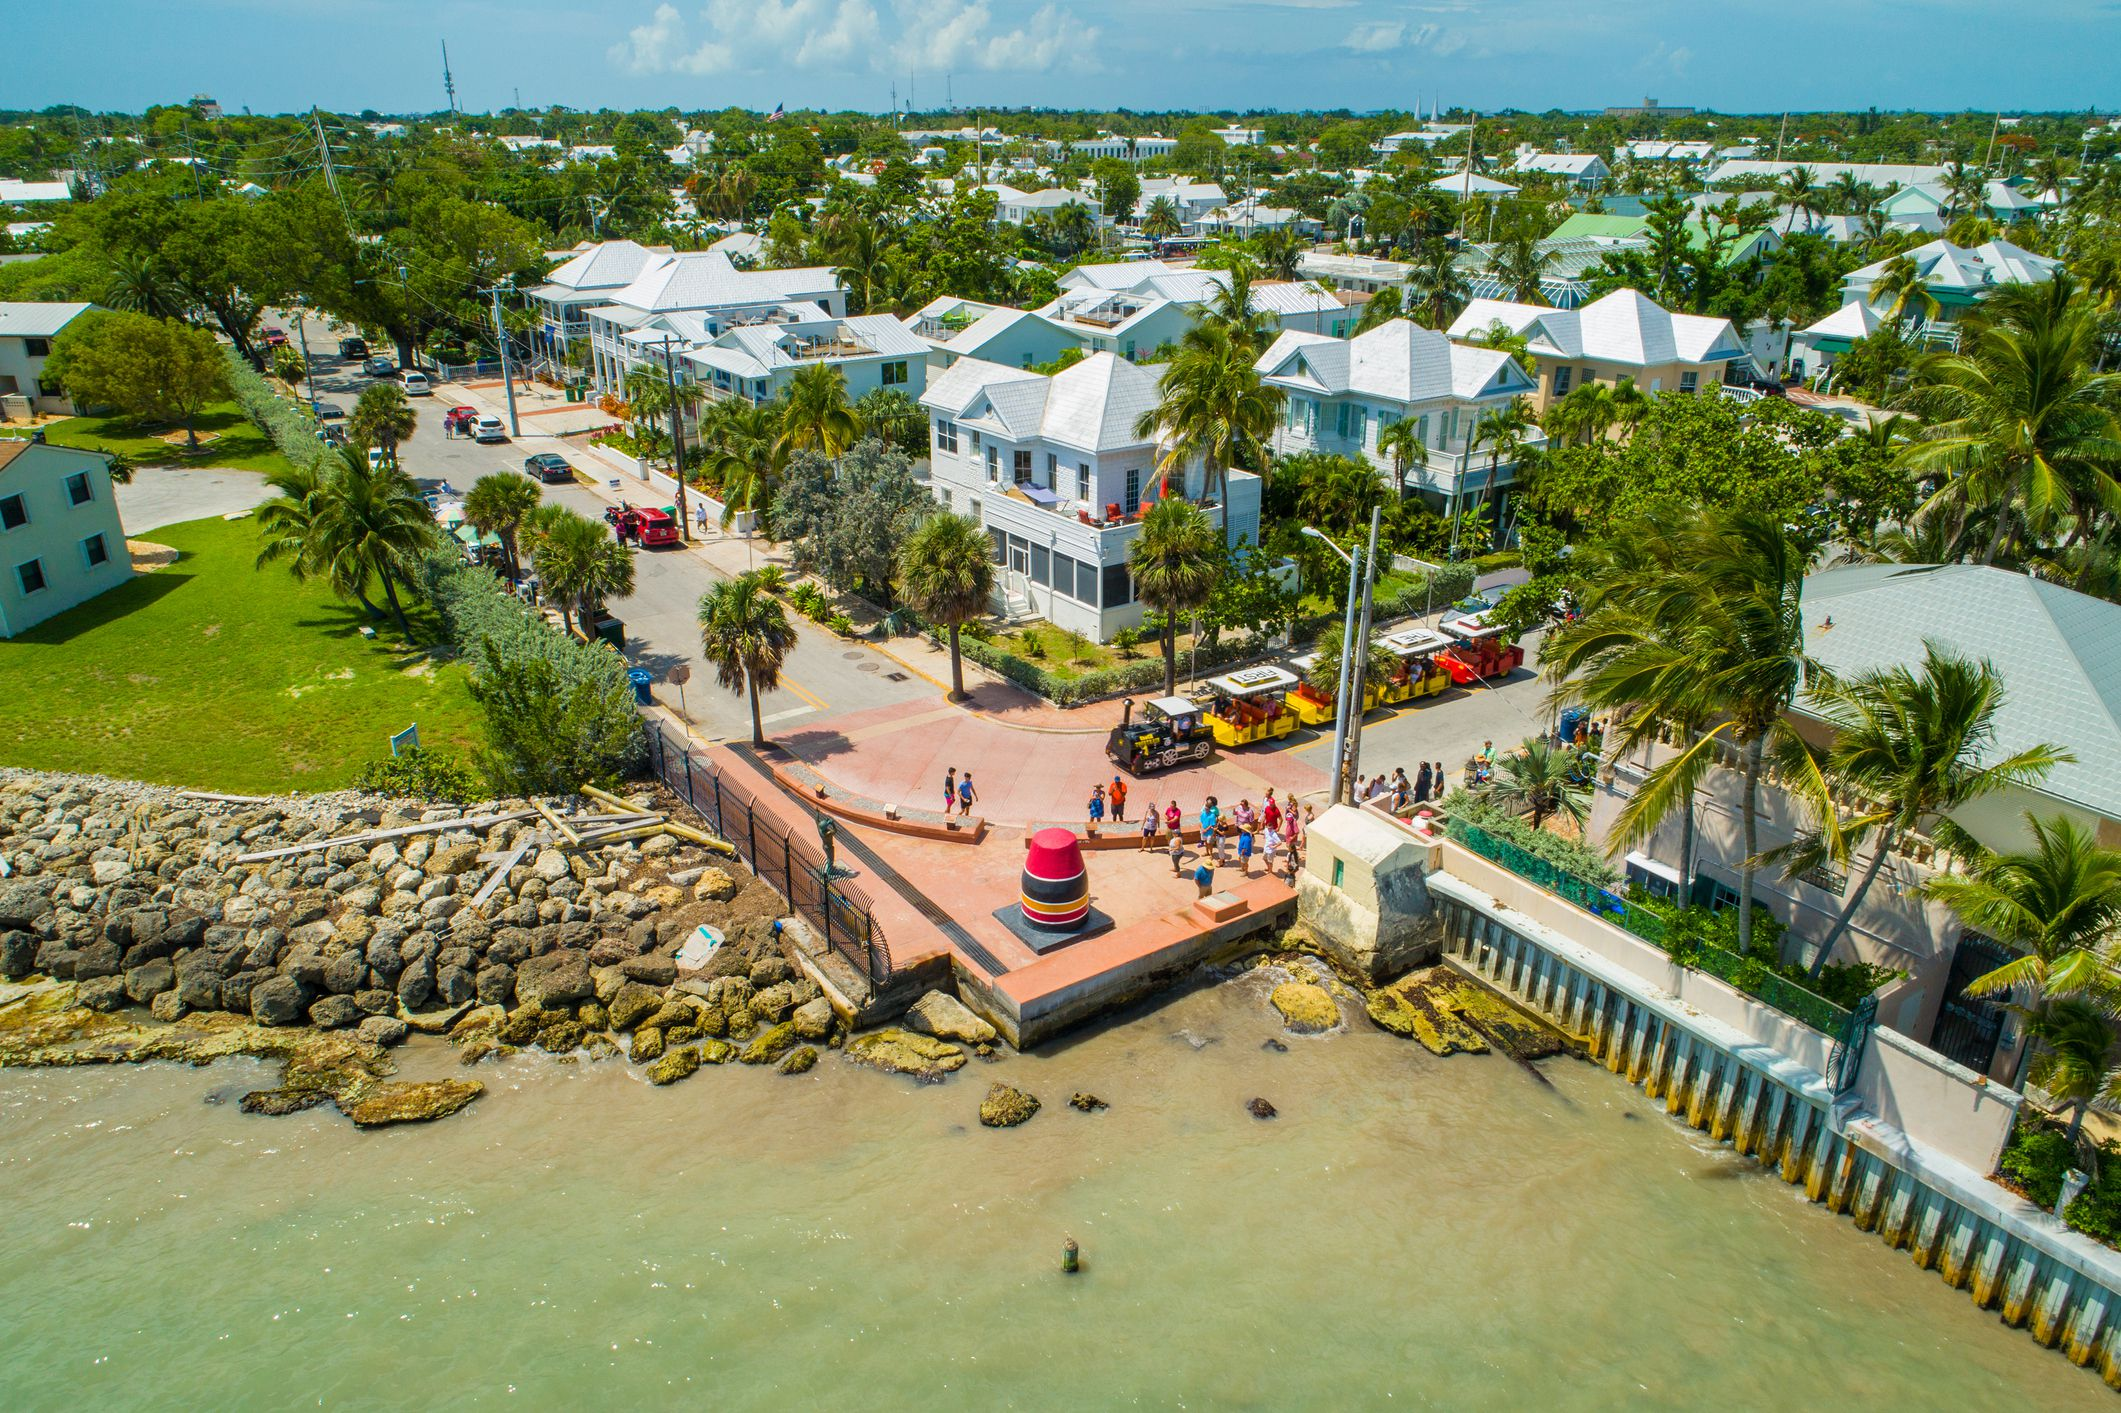 The Top 15 Things to Do in Key West, Florida